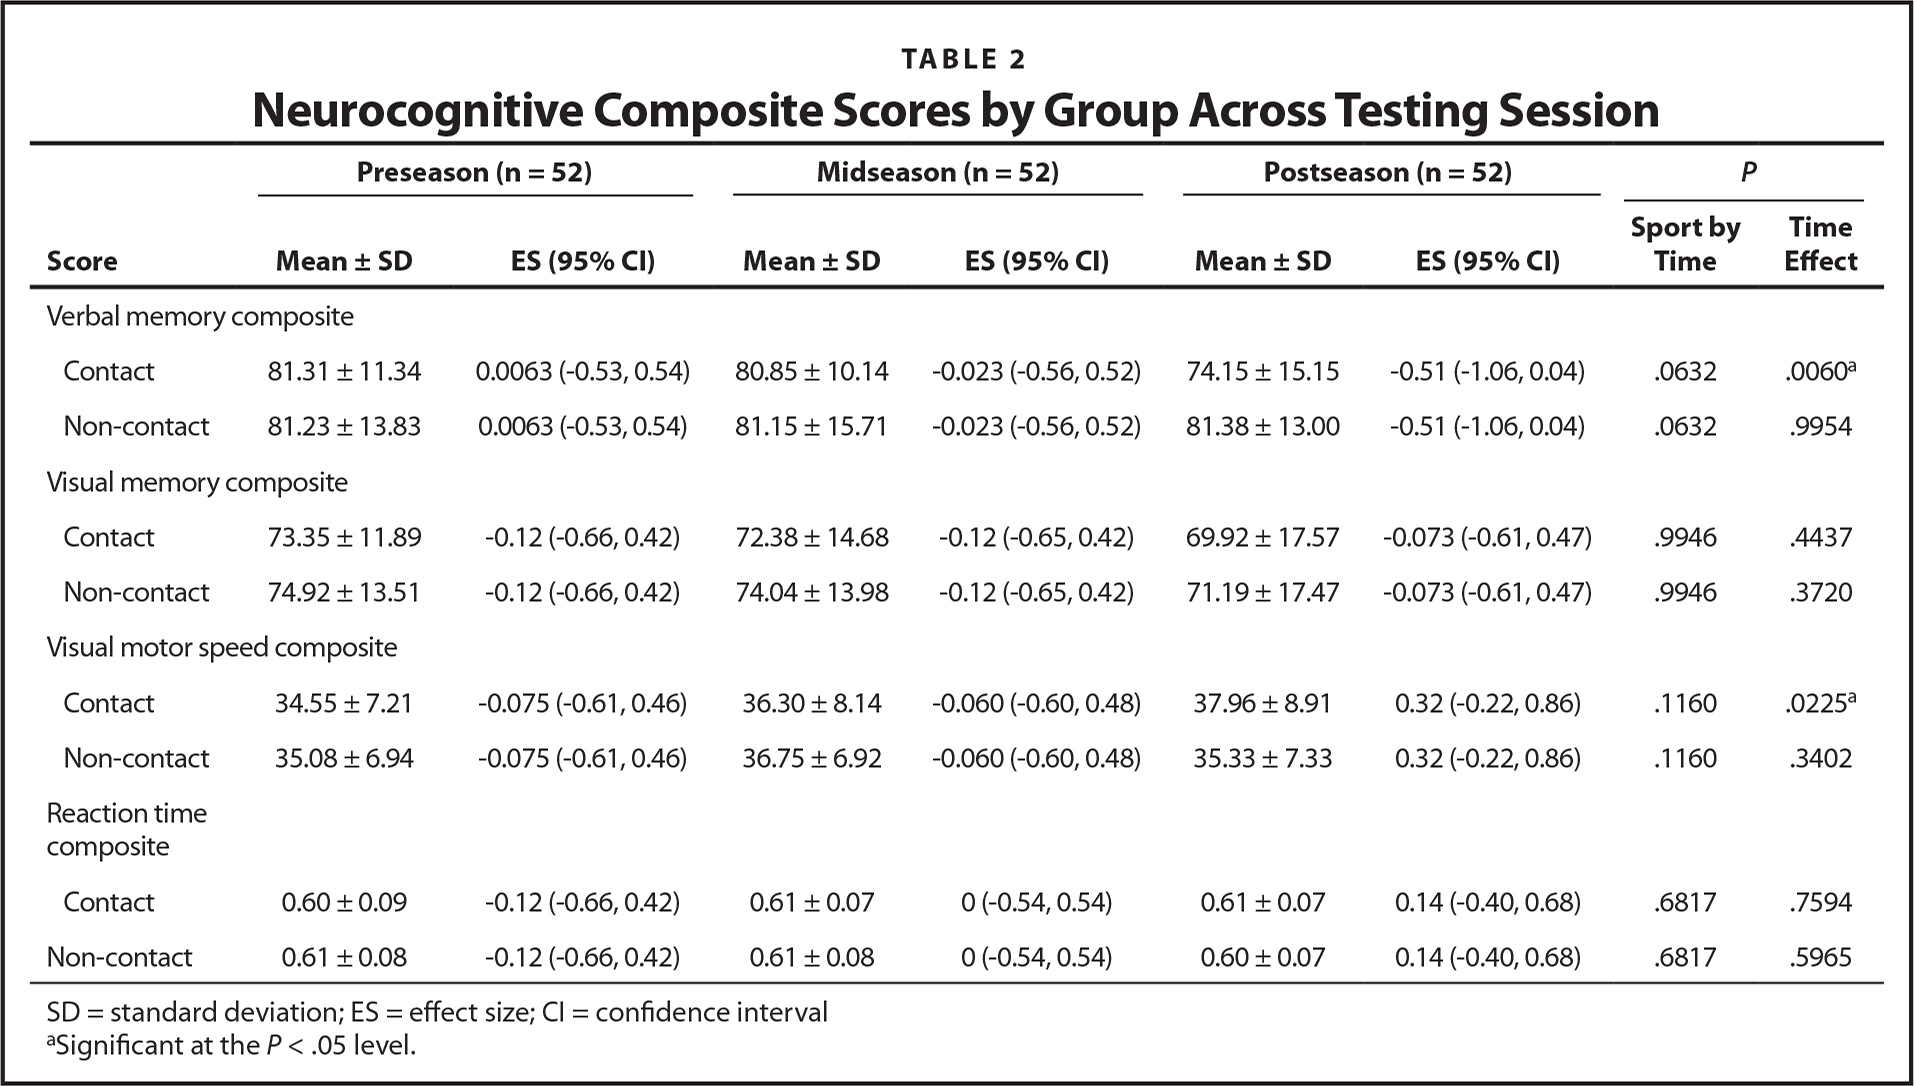 Neurocognitive Composite Scores by Group Across Testing Session